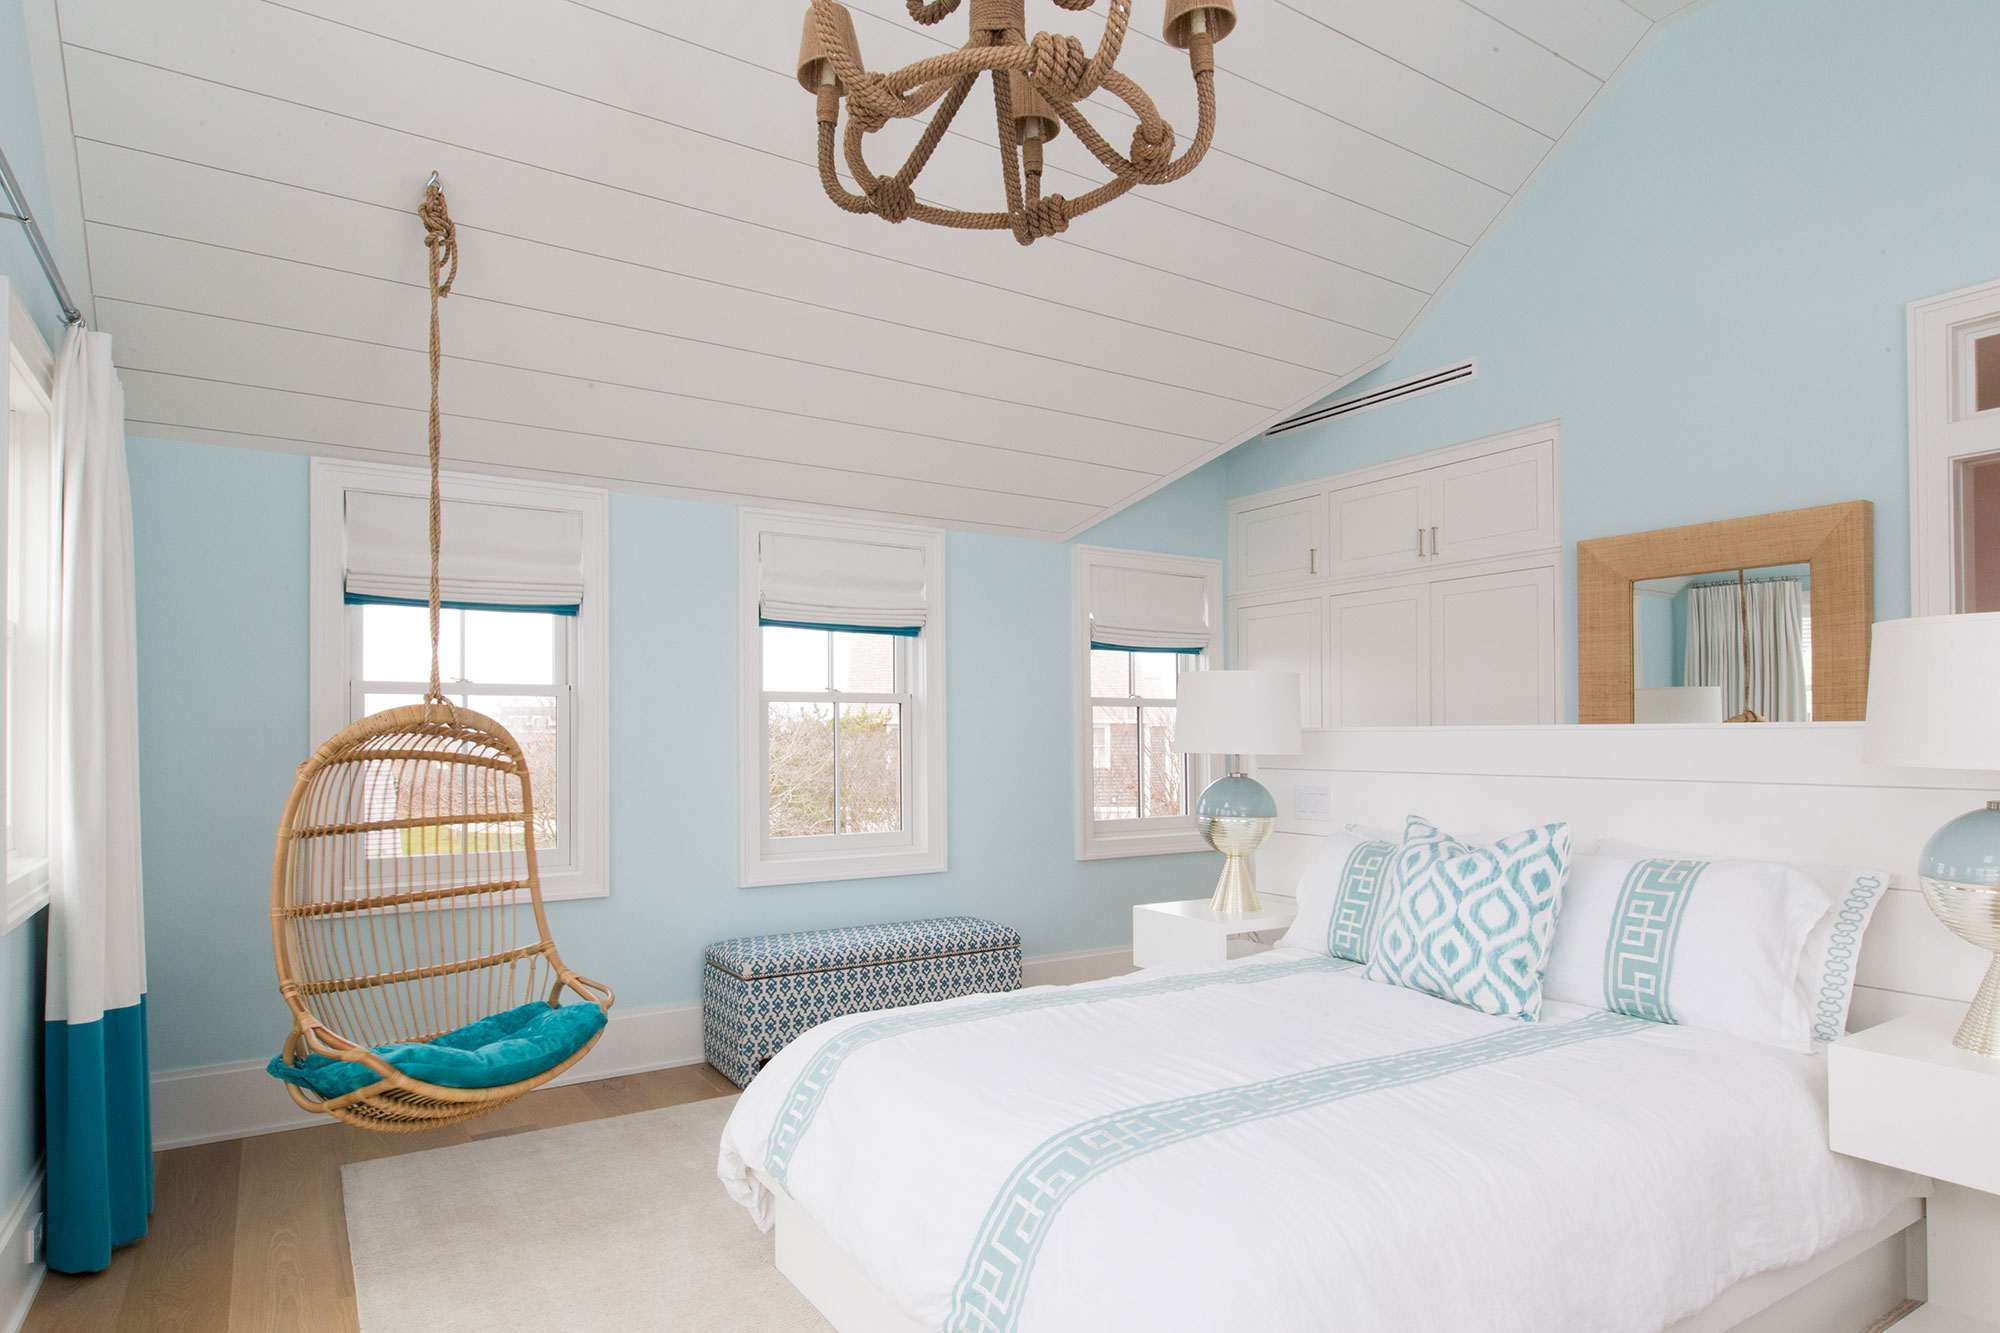 Beach inspired bedroom with rattan swing chair